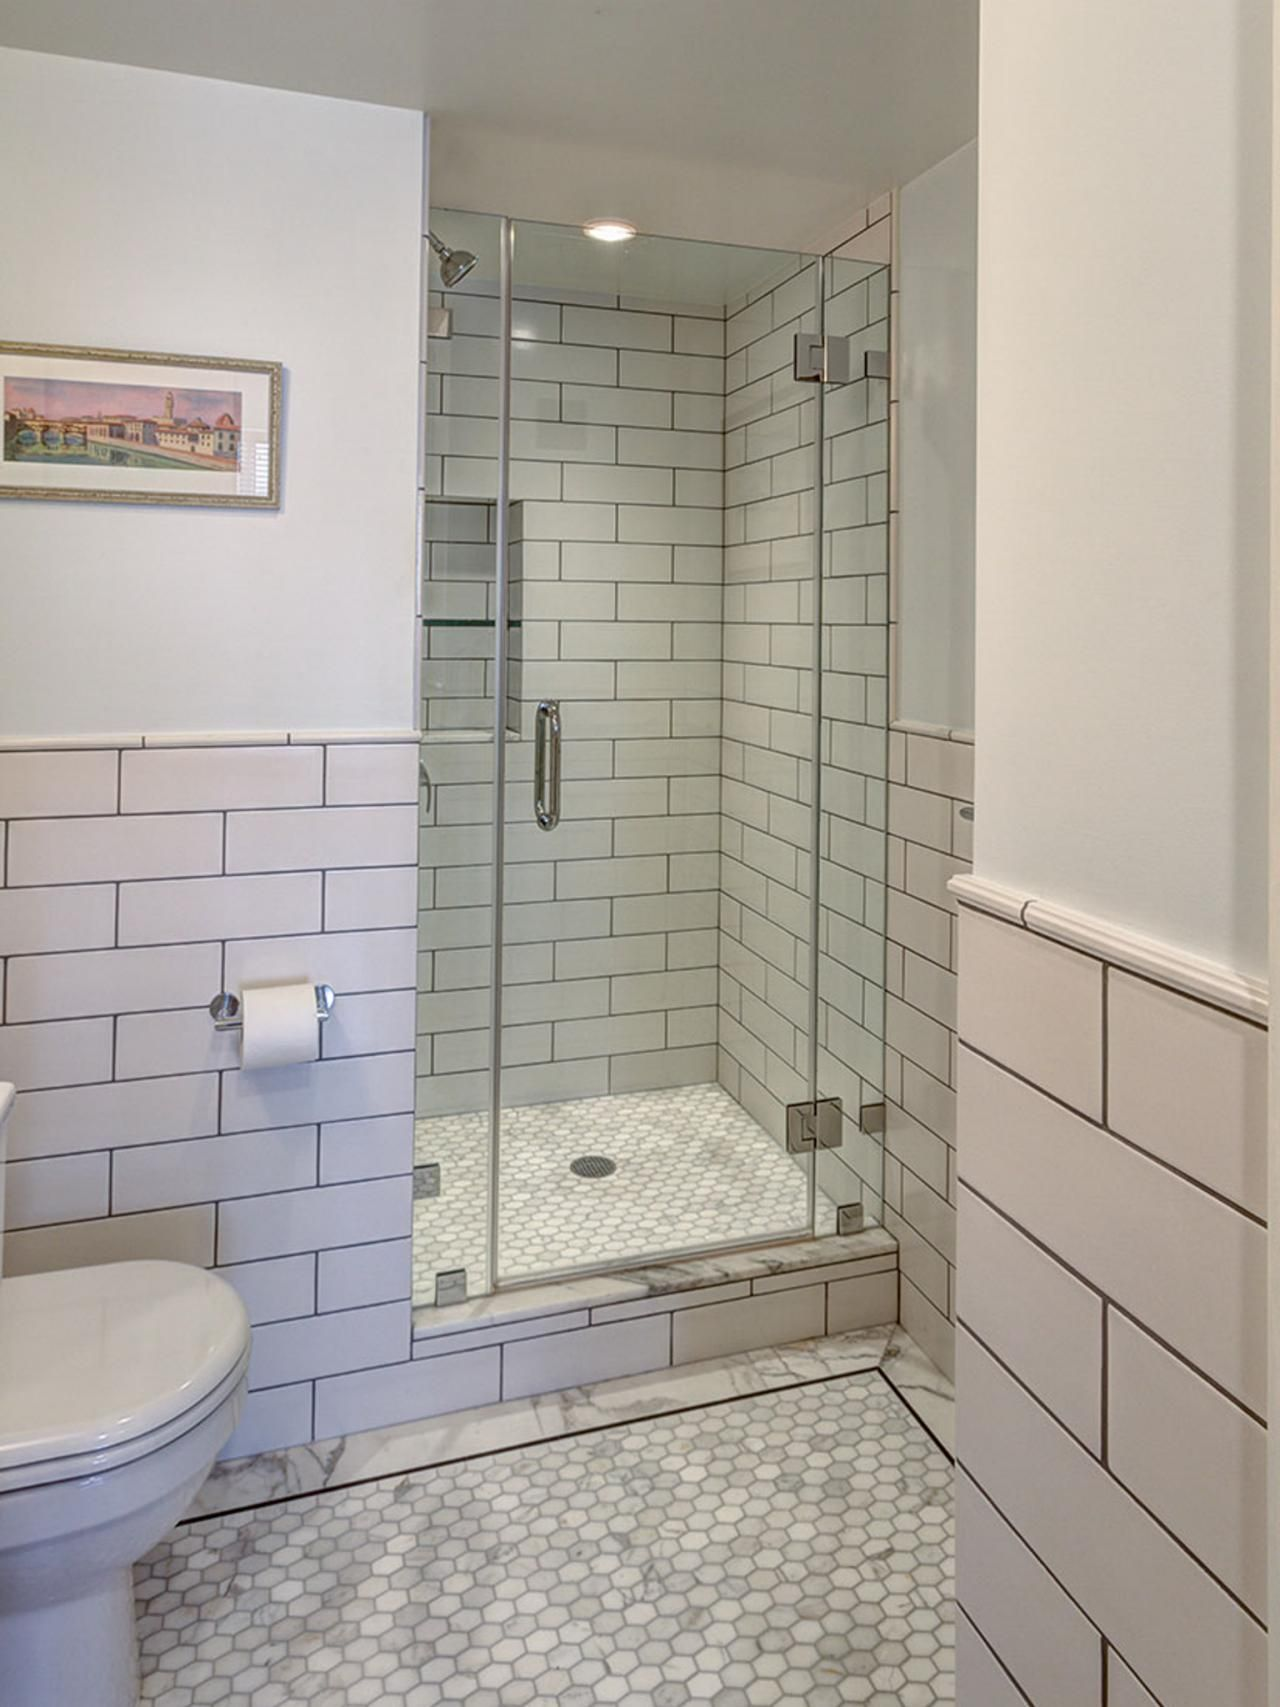 Oversized subway tile is a mod counterpart to the traditional oversized subway tile is a mod counterpart to the traditional hexagonal floor tile in this new dailygadgetfo Image collections